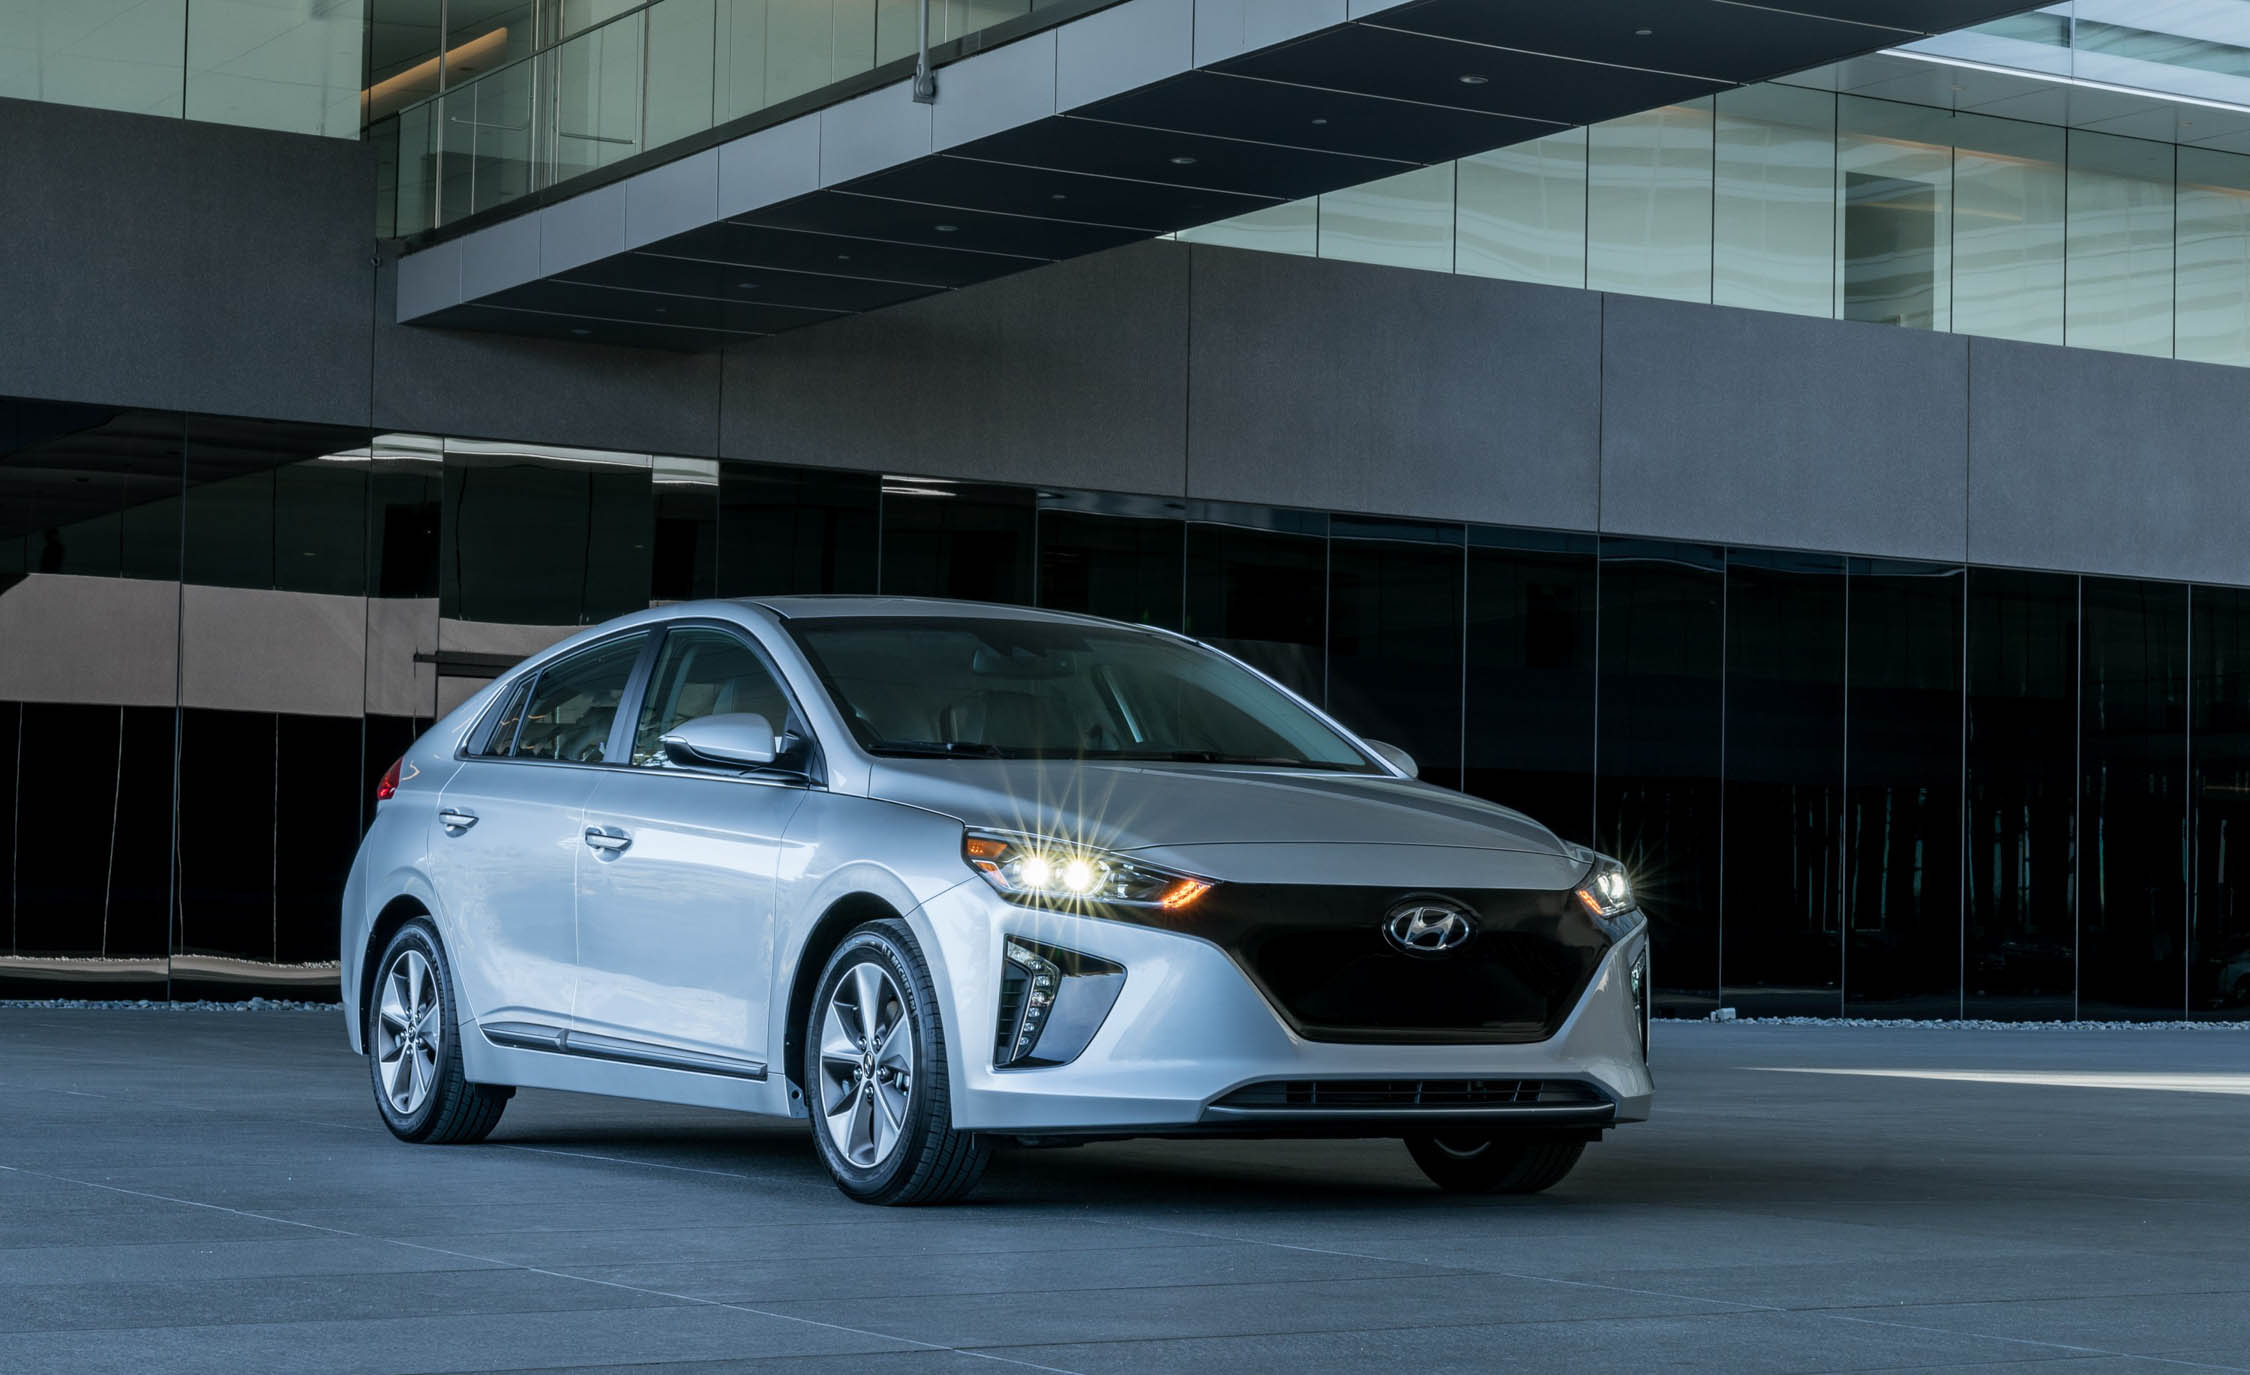 2017 Hyundai Ioniq Electric Exterior (Photo 2 of 67)